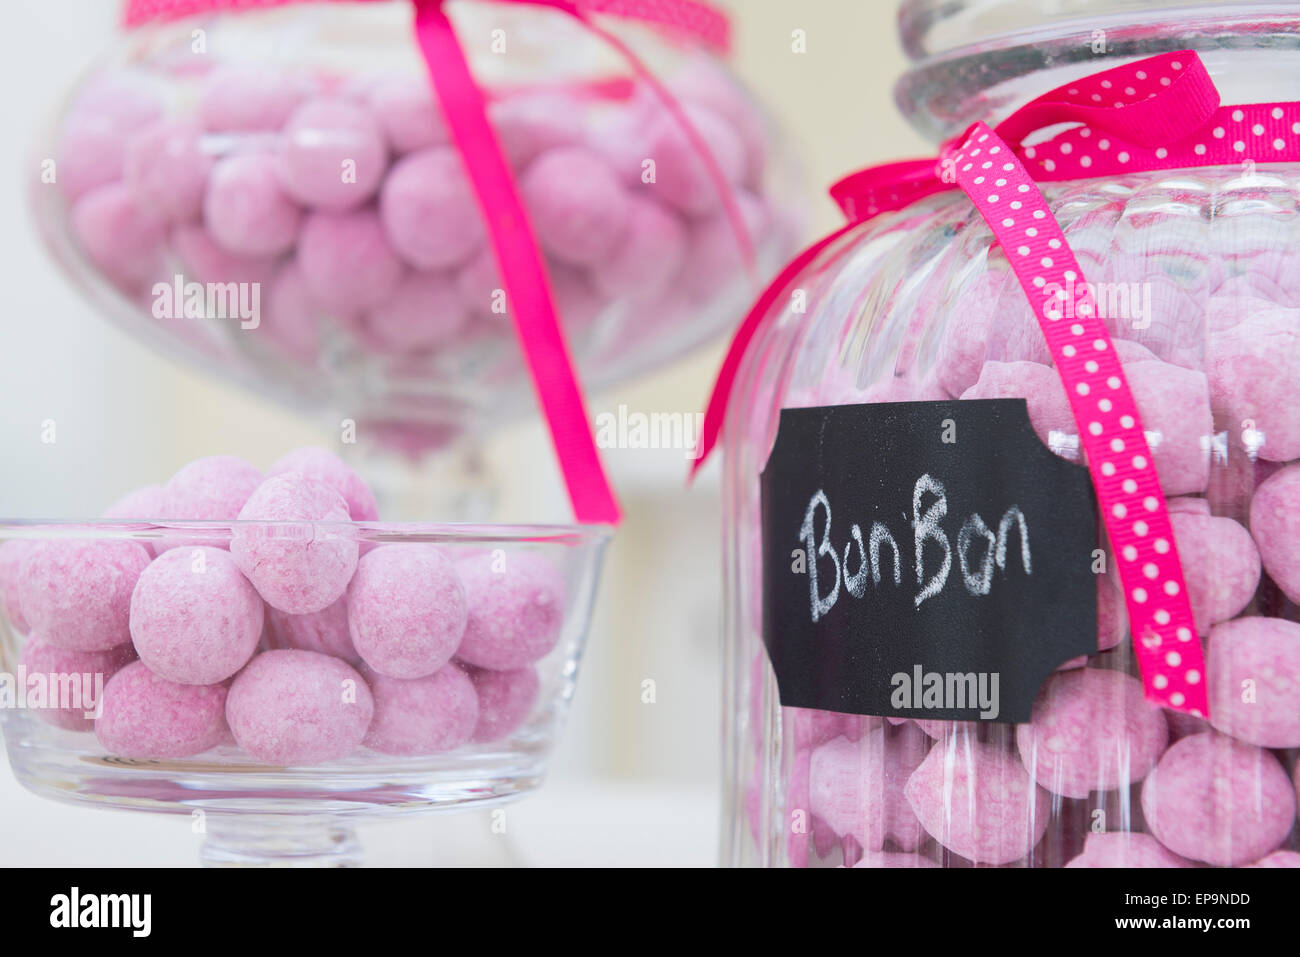 Jar Of Sweets Stock Photos & Jar Of Sweets Stock Images - Alamy